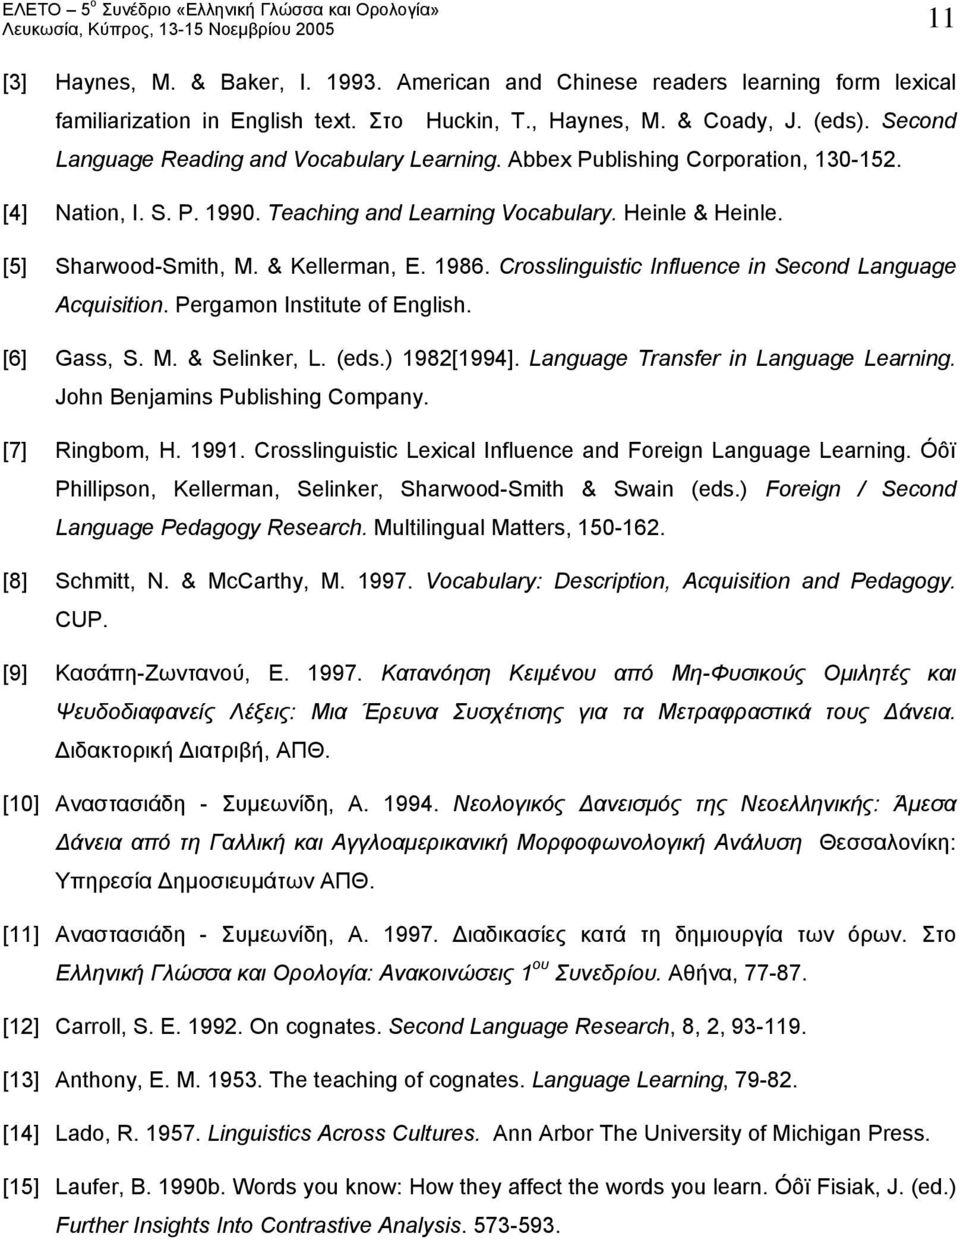 & Kellerman, E. 1986. Crosslinguistic Influence in Second Language Acquisition. Pergamon Institute of English. [6] Gass, S. M. & Selinker, L. (eds.) 1982[1994]. Language Transfer in Language Learning.